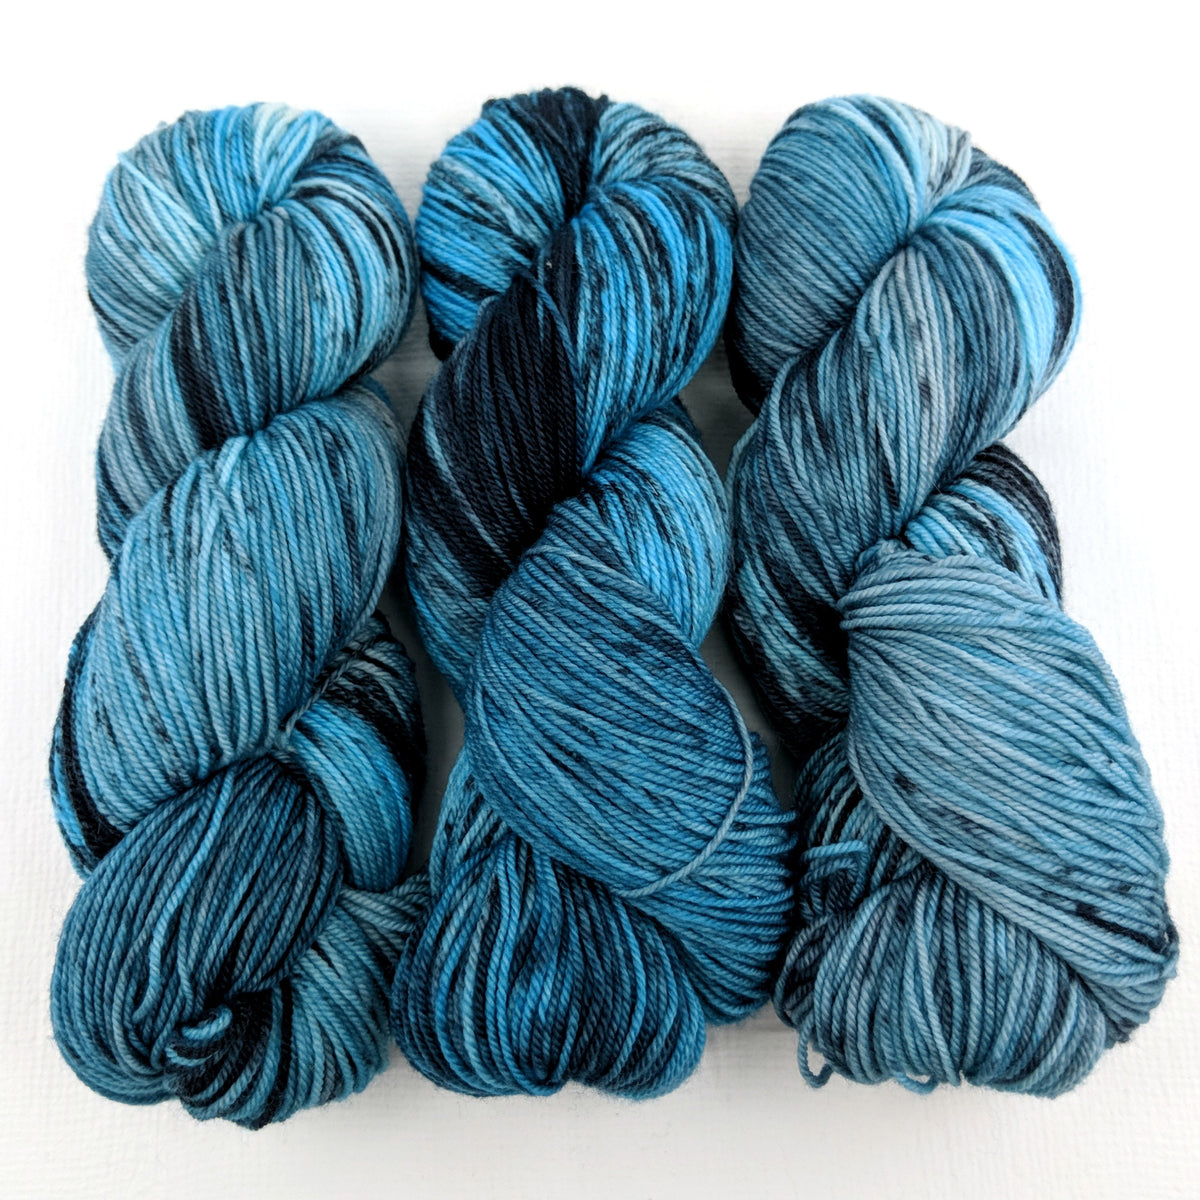 Chinook Arch in Worsted Weight